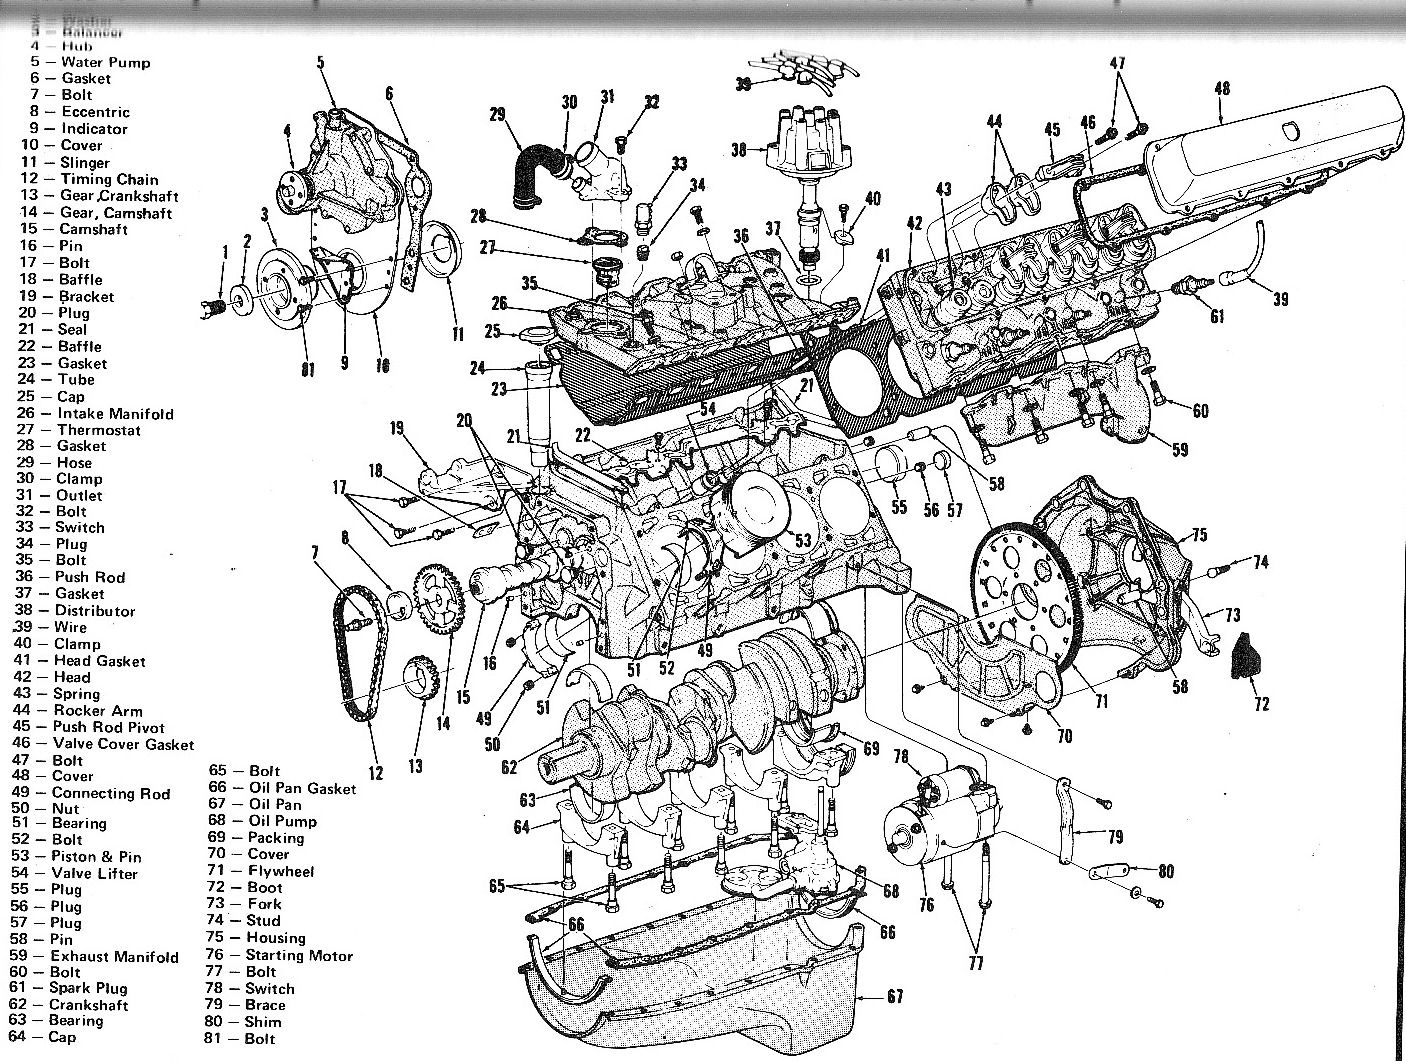 ford mustang 289 engine diagram oil electrical schematic wiring ford mustang 289 engine diagram oil [ 1406 x 1061 Pixel ]